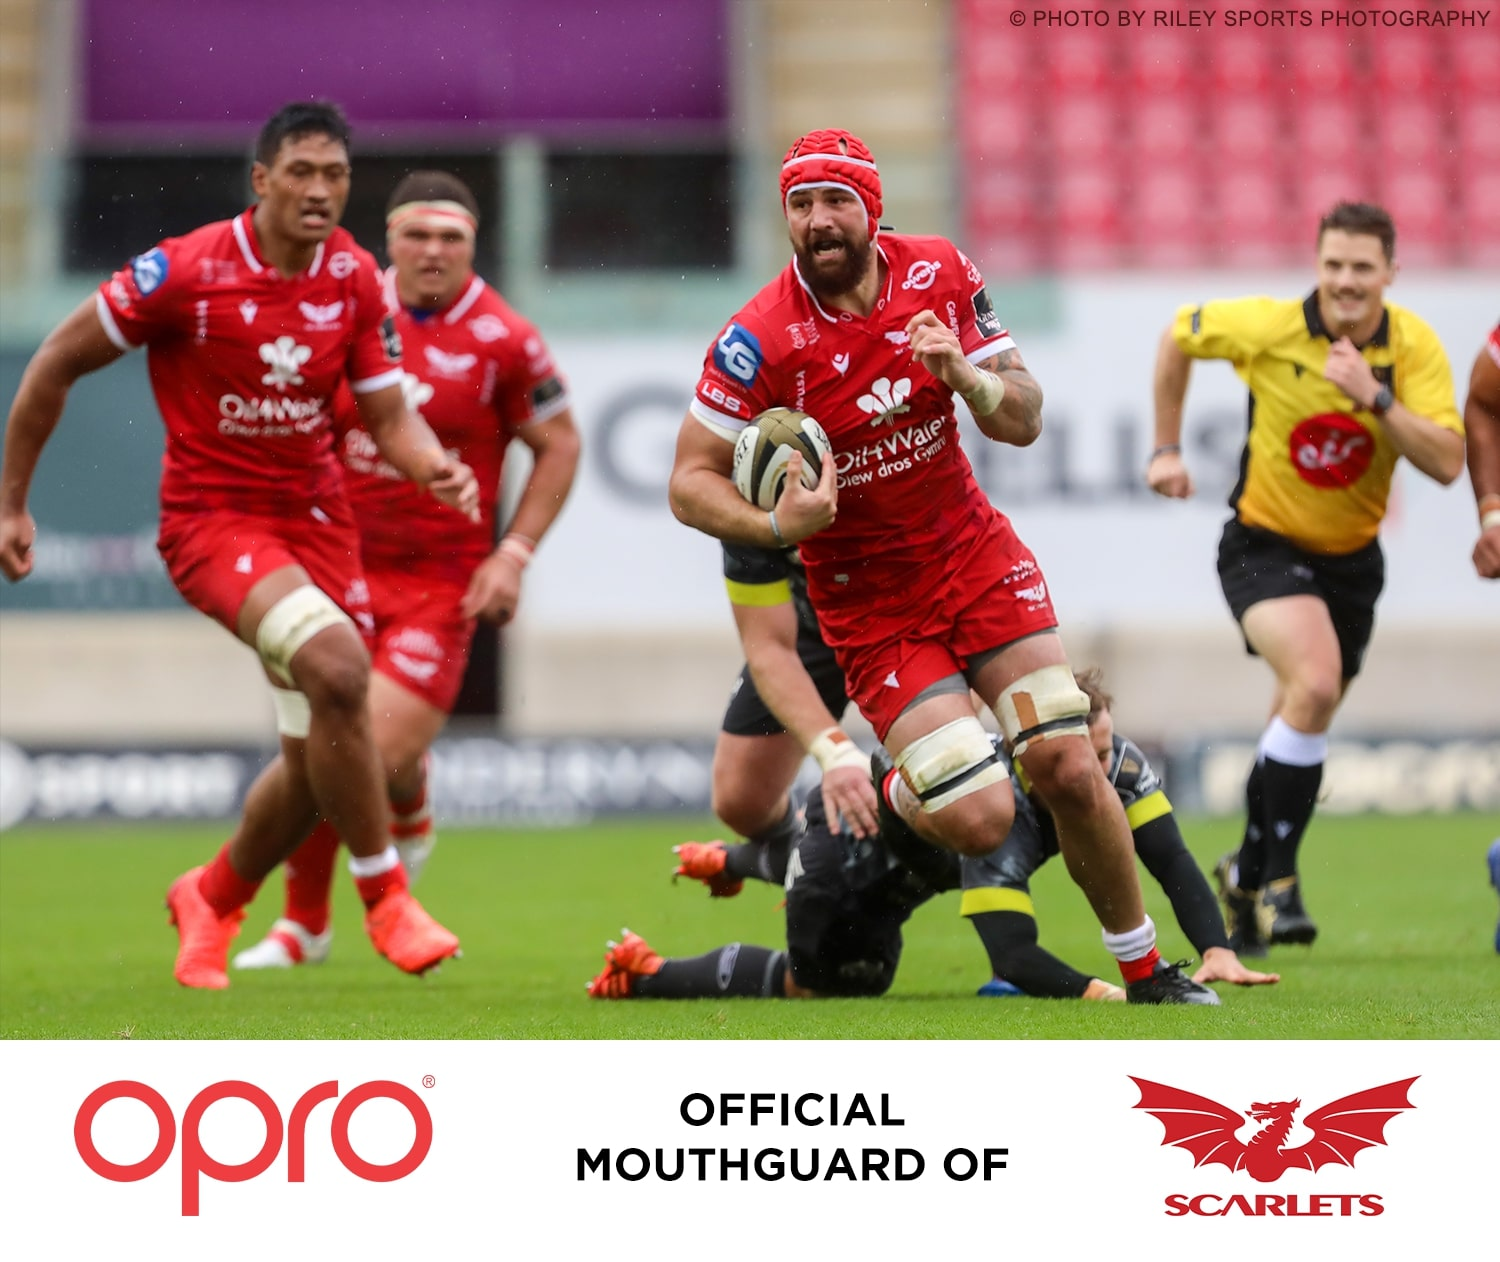 Scarlets Announce Three-year Partnership with OPRO Mouthguards